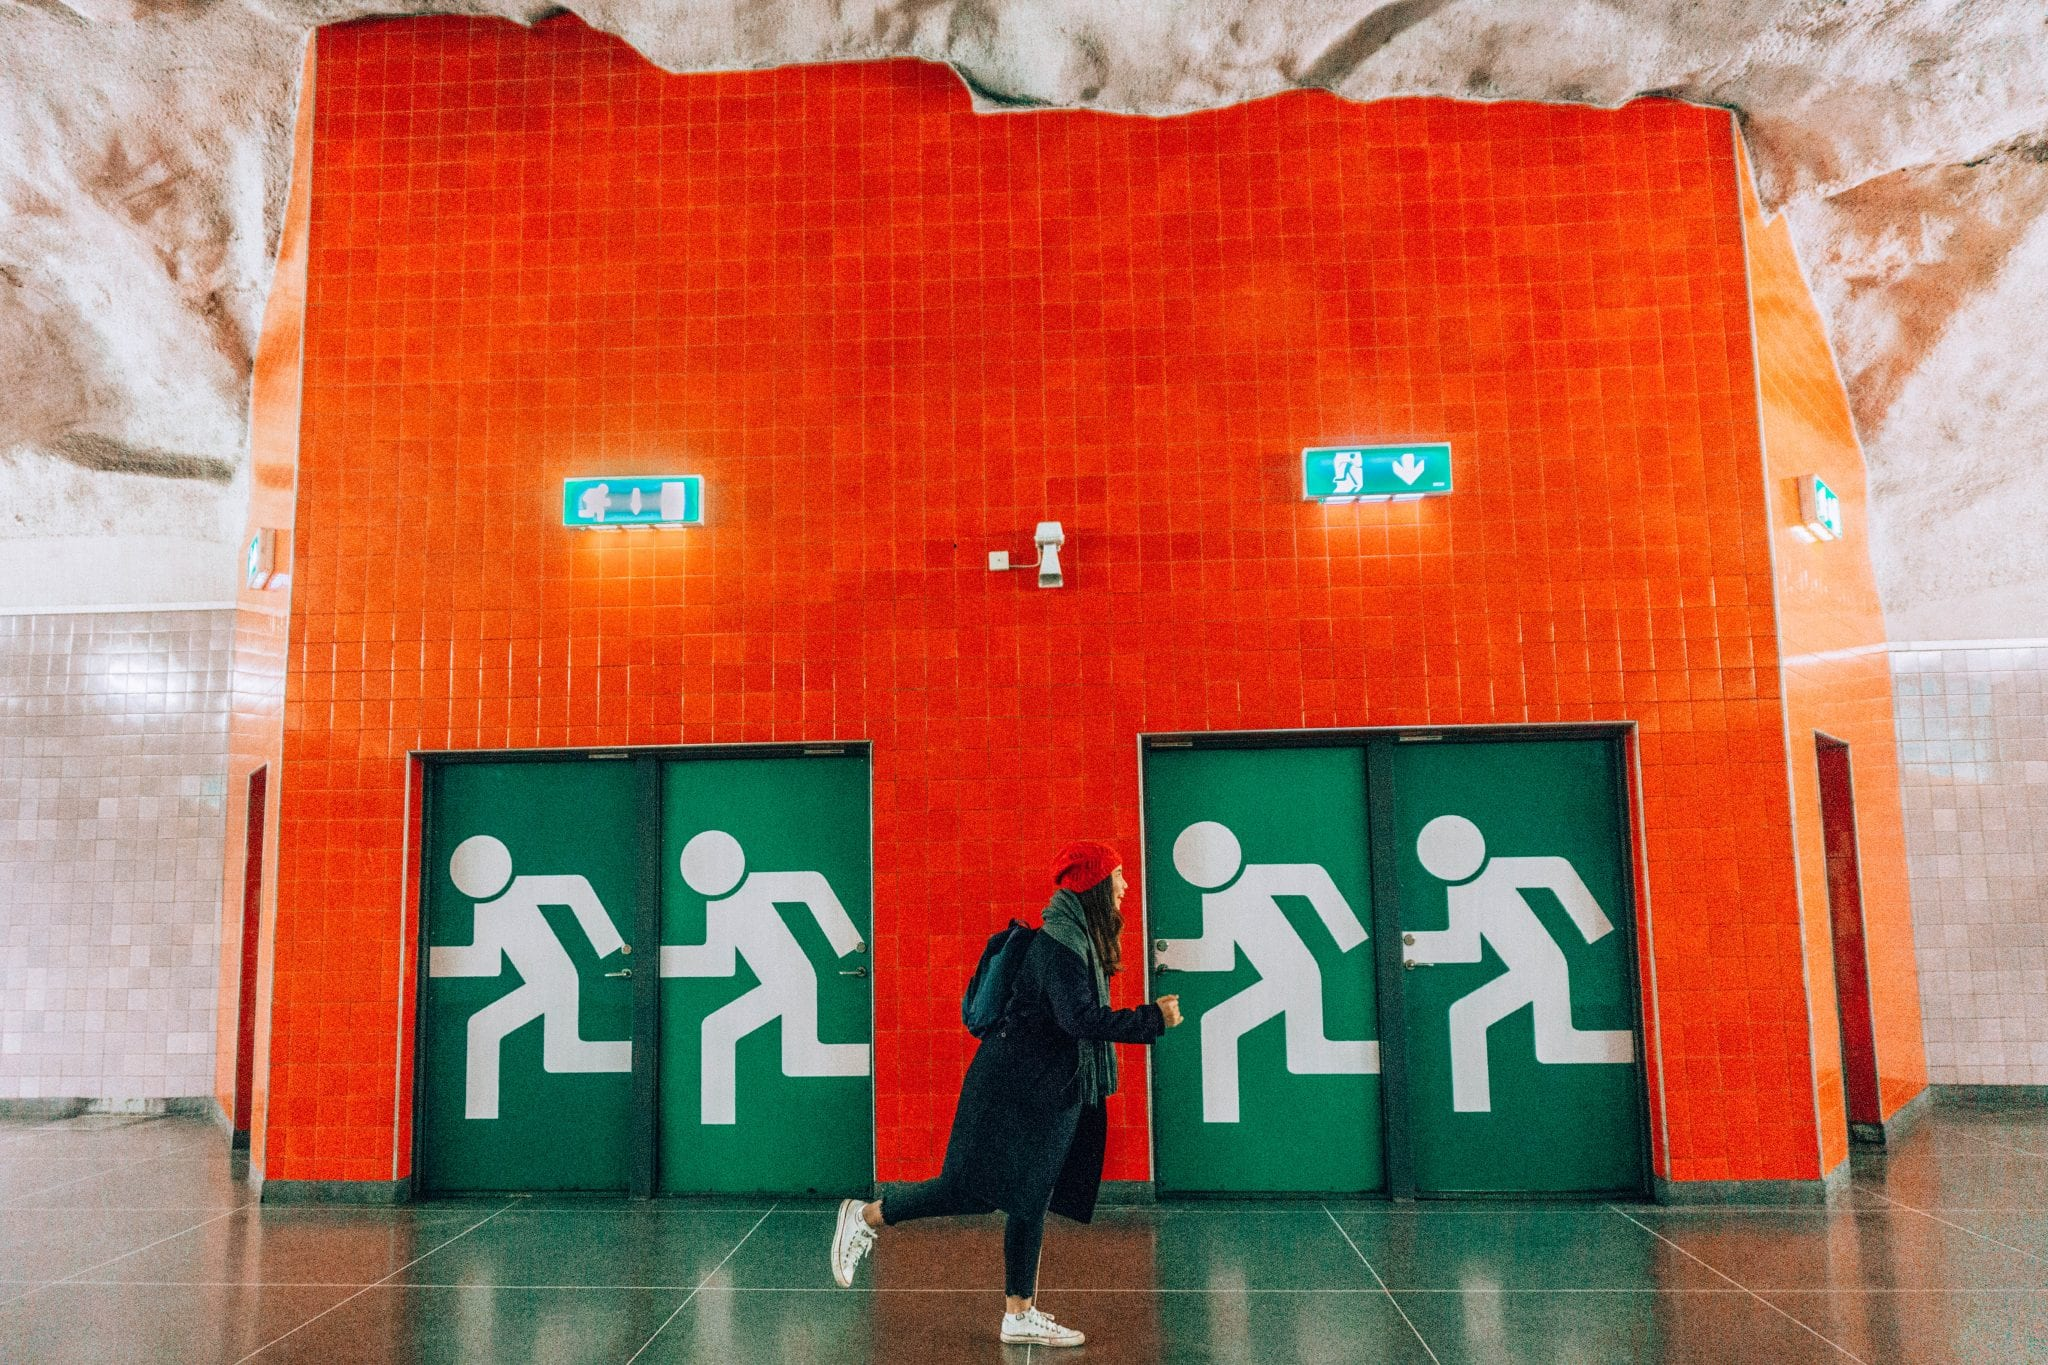 Stockholm Subway Art: Universitetet